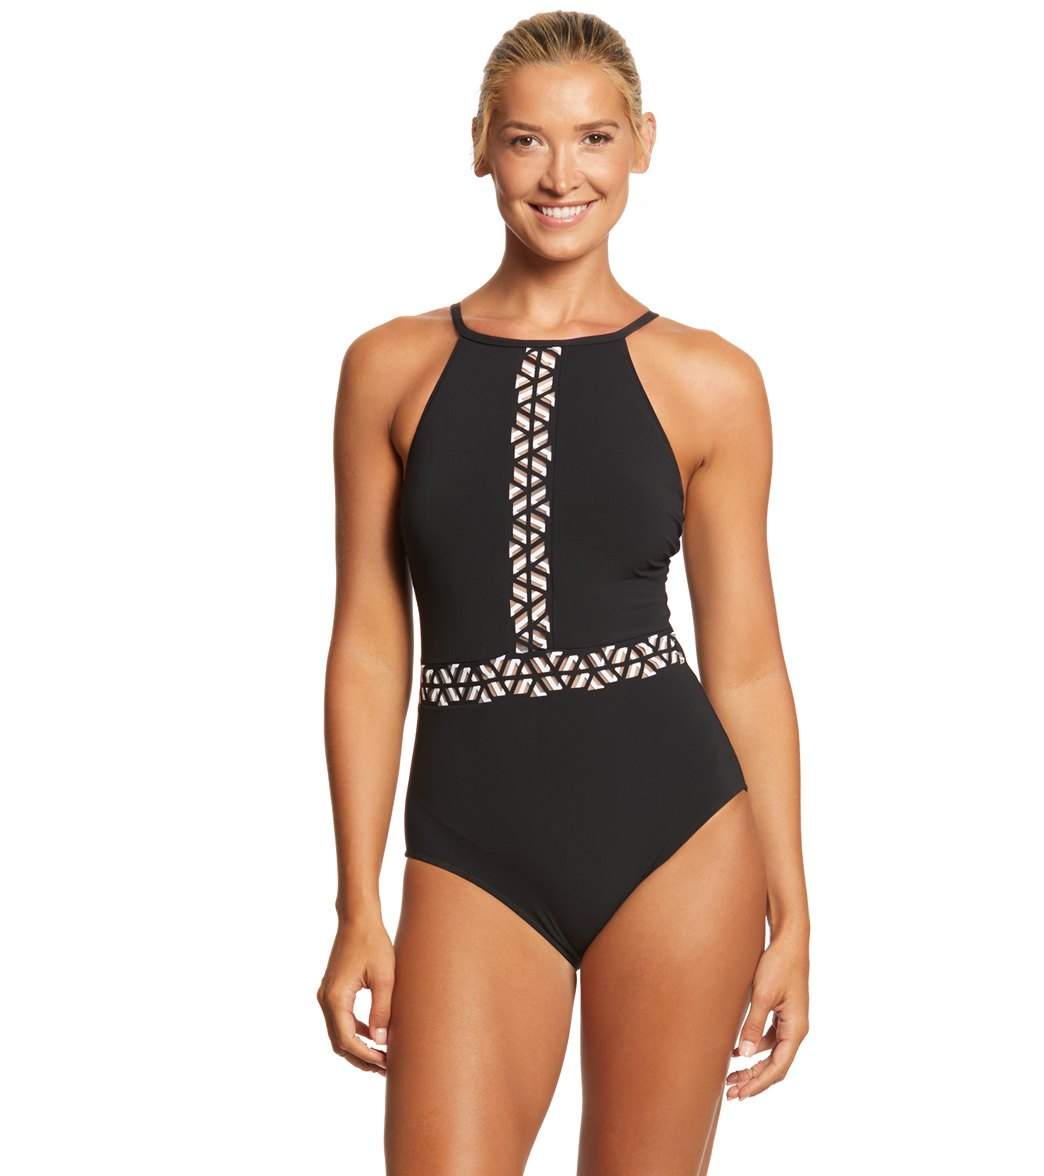 d9c6b69572 Profile by Gottex Labyrinth High Neck One Piece Swimsuit at SwimOutlet.com  - Free Shipping